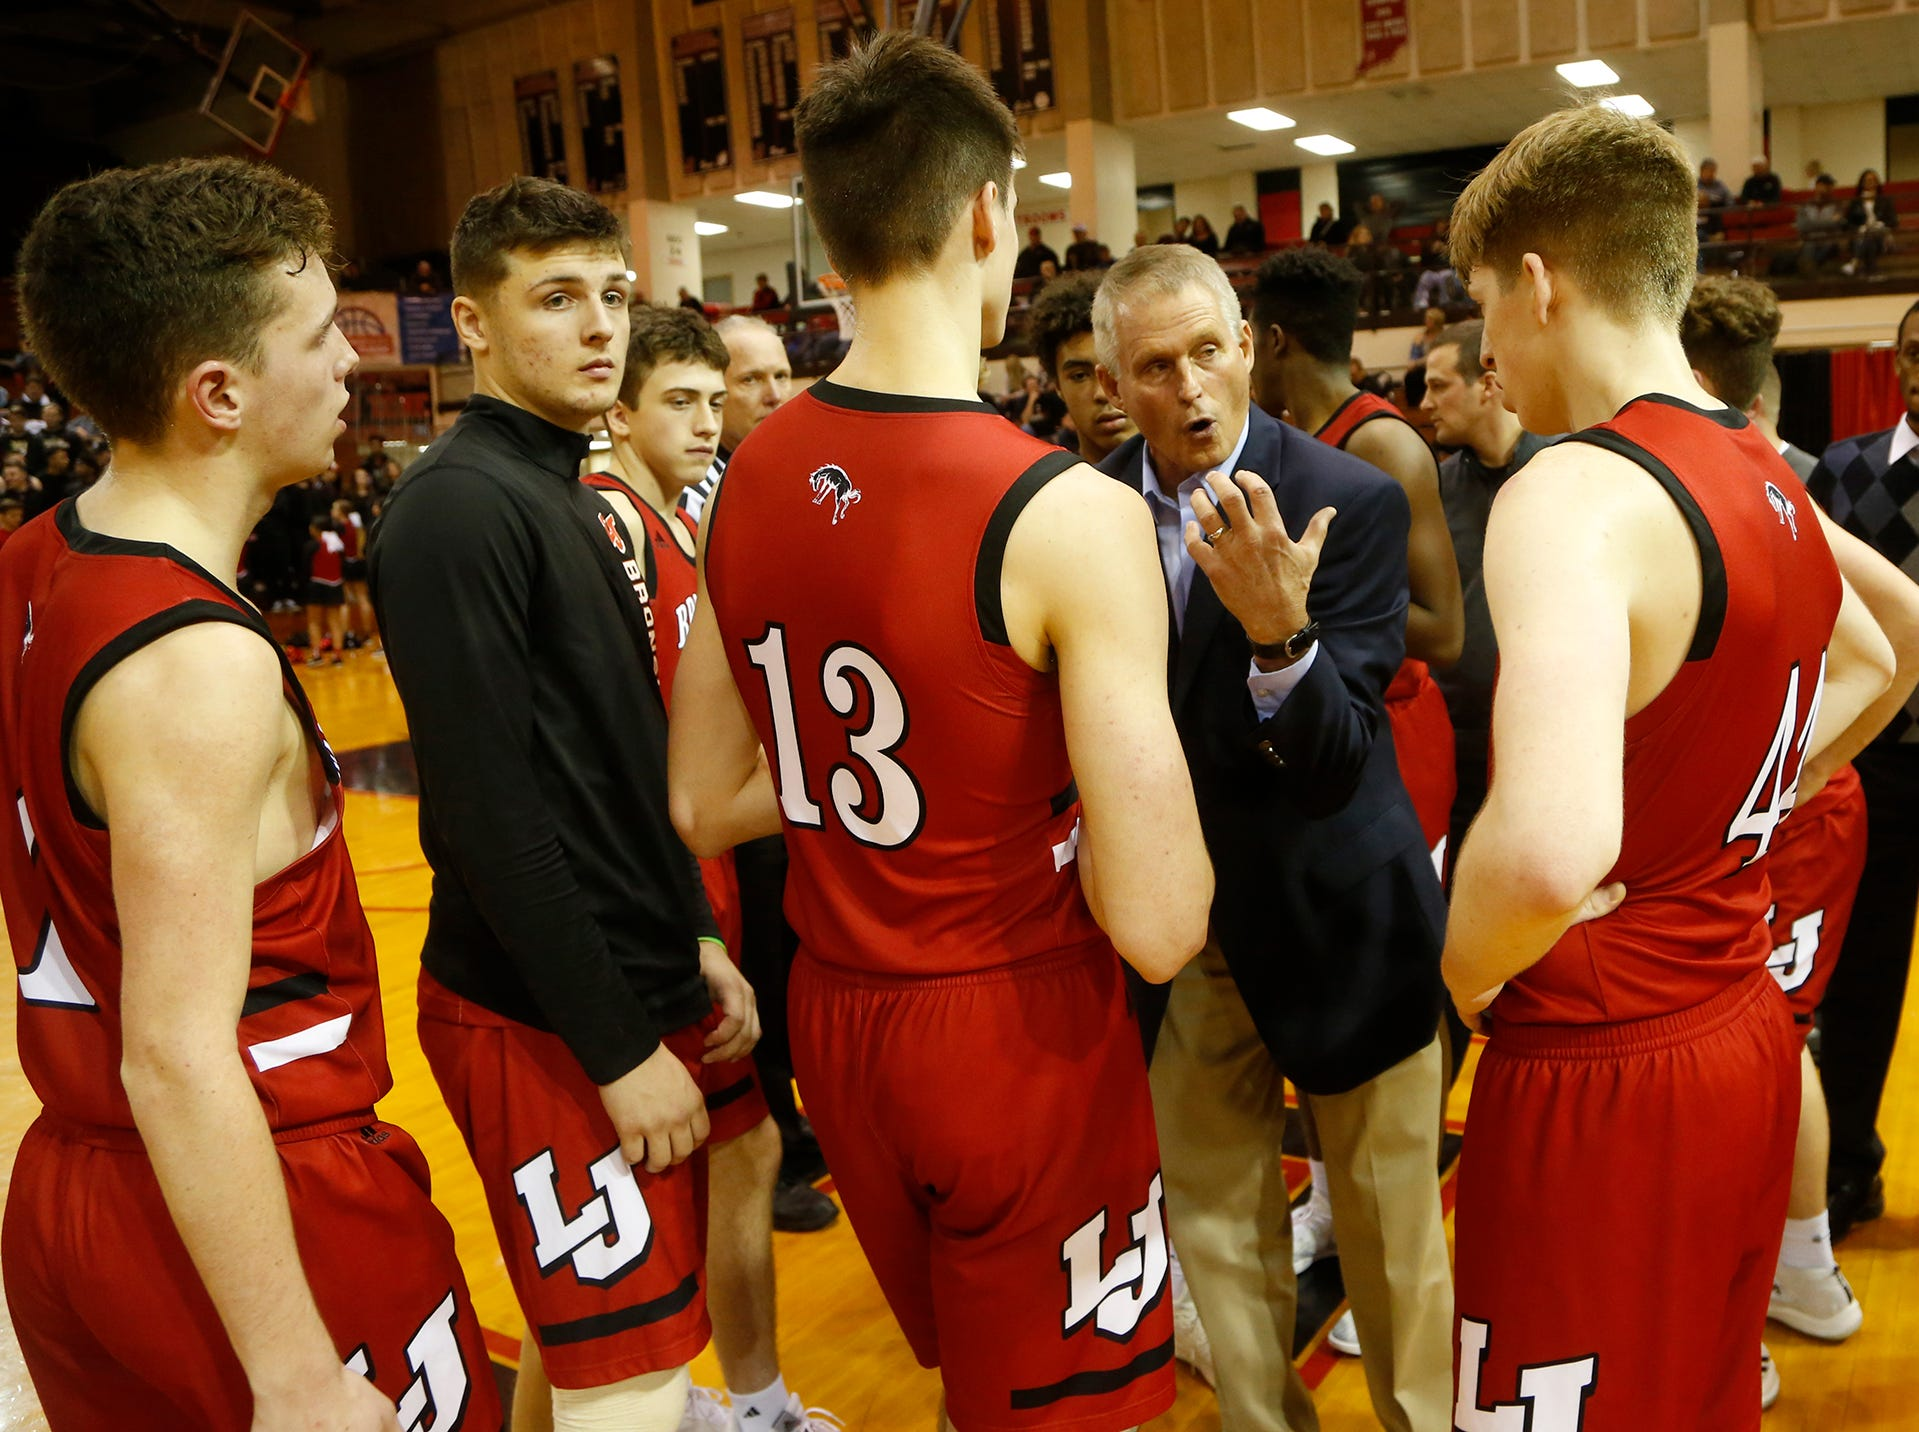 Lafayette Jeff head coach Mark Barnhizer talks sets up a play during a timeout against Central Catholic in the championship of the Franciscan Health Hoops Classic Saturday, December 1, 2018, at Lafayette Jeff. Jeff defeated Central Catholic 76-73 for the title.